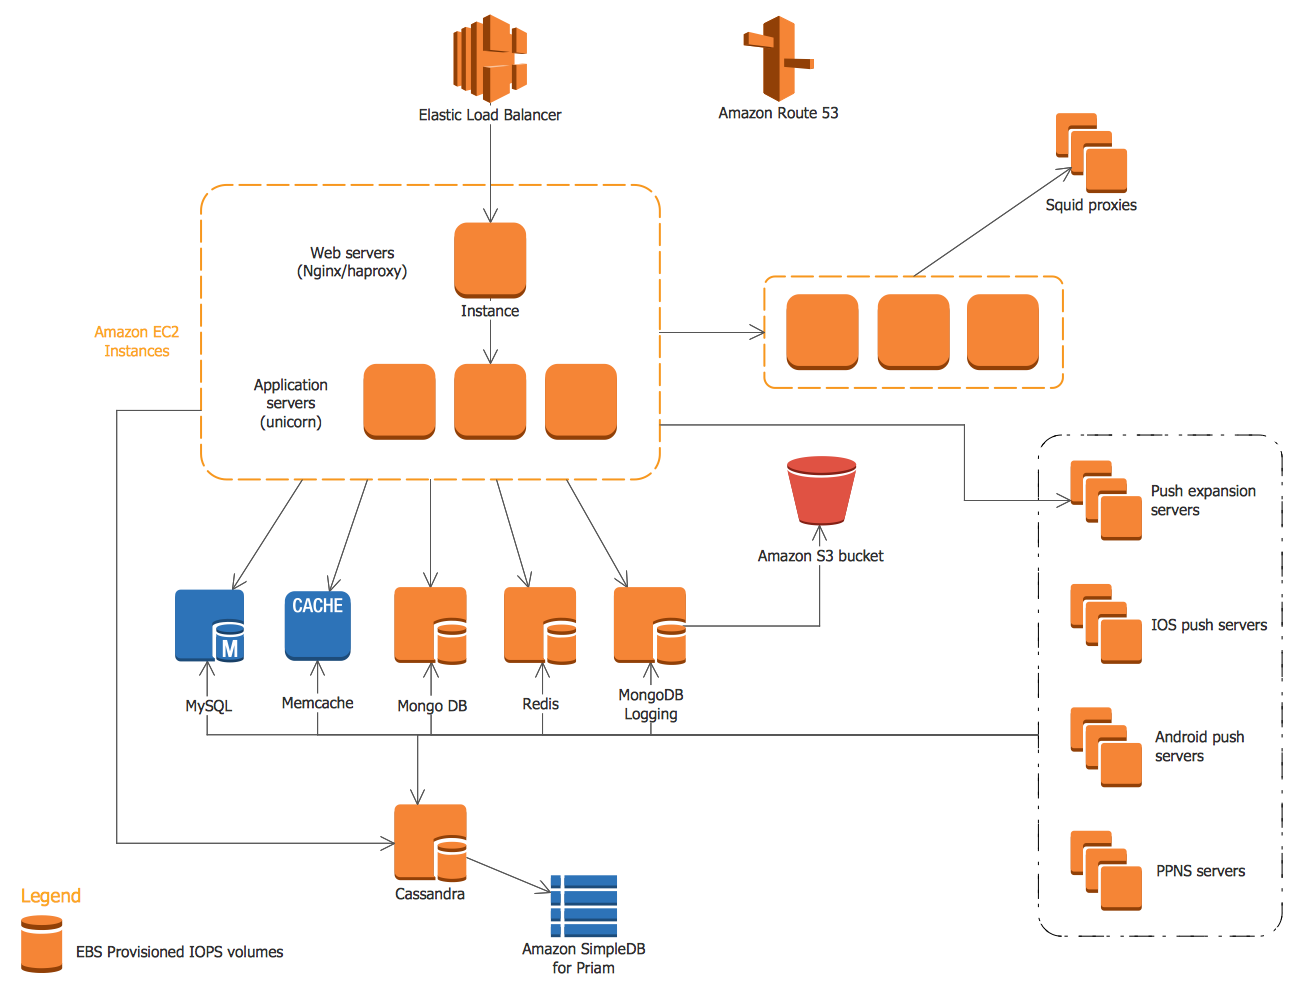 Example 3 Parse Architecture on AWS. This diagram was